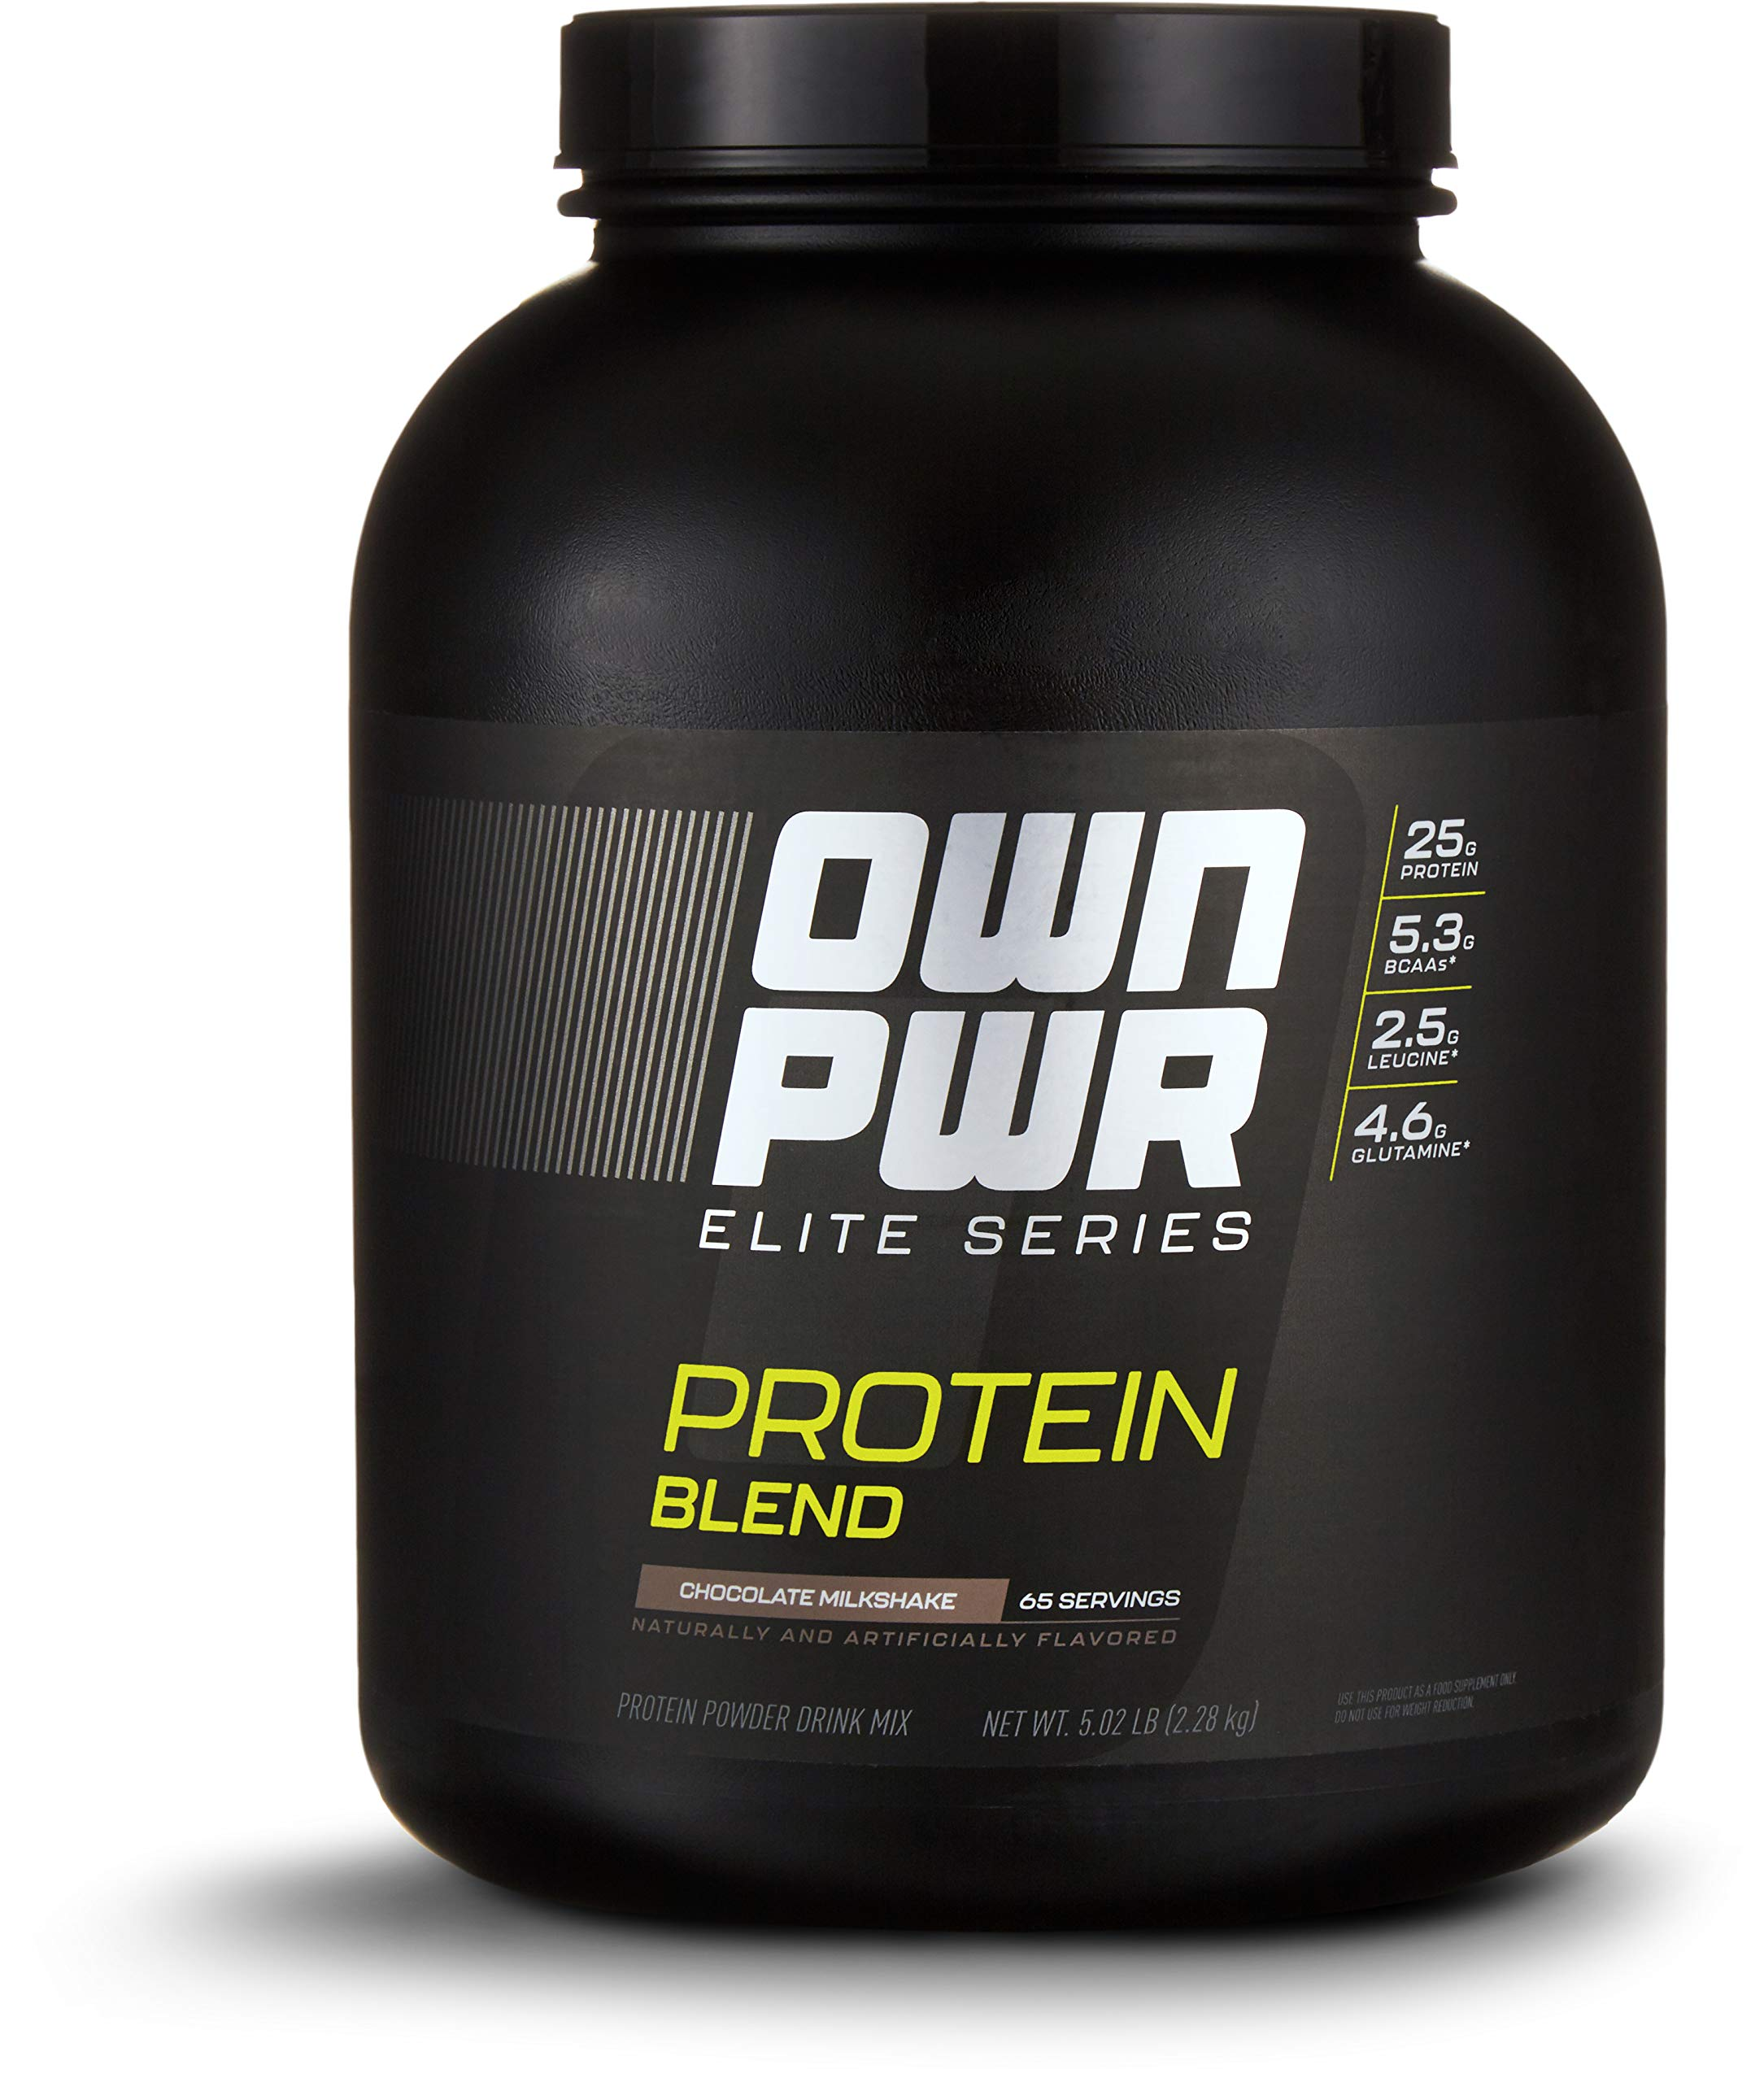 OWN PWR Elite Series Protein Powder, Chocolate Milkshake, 5 lb, Protein Blend (Whey Isolate, Milk Isolate, Micellar Casein)